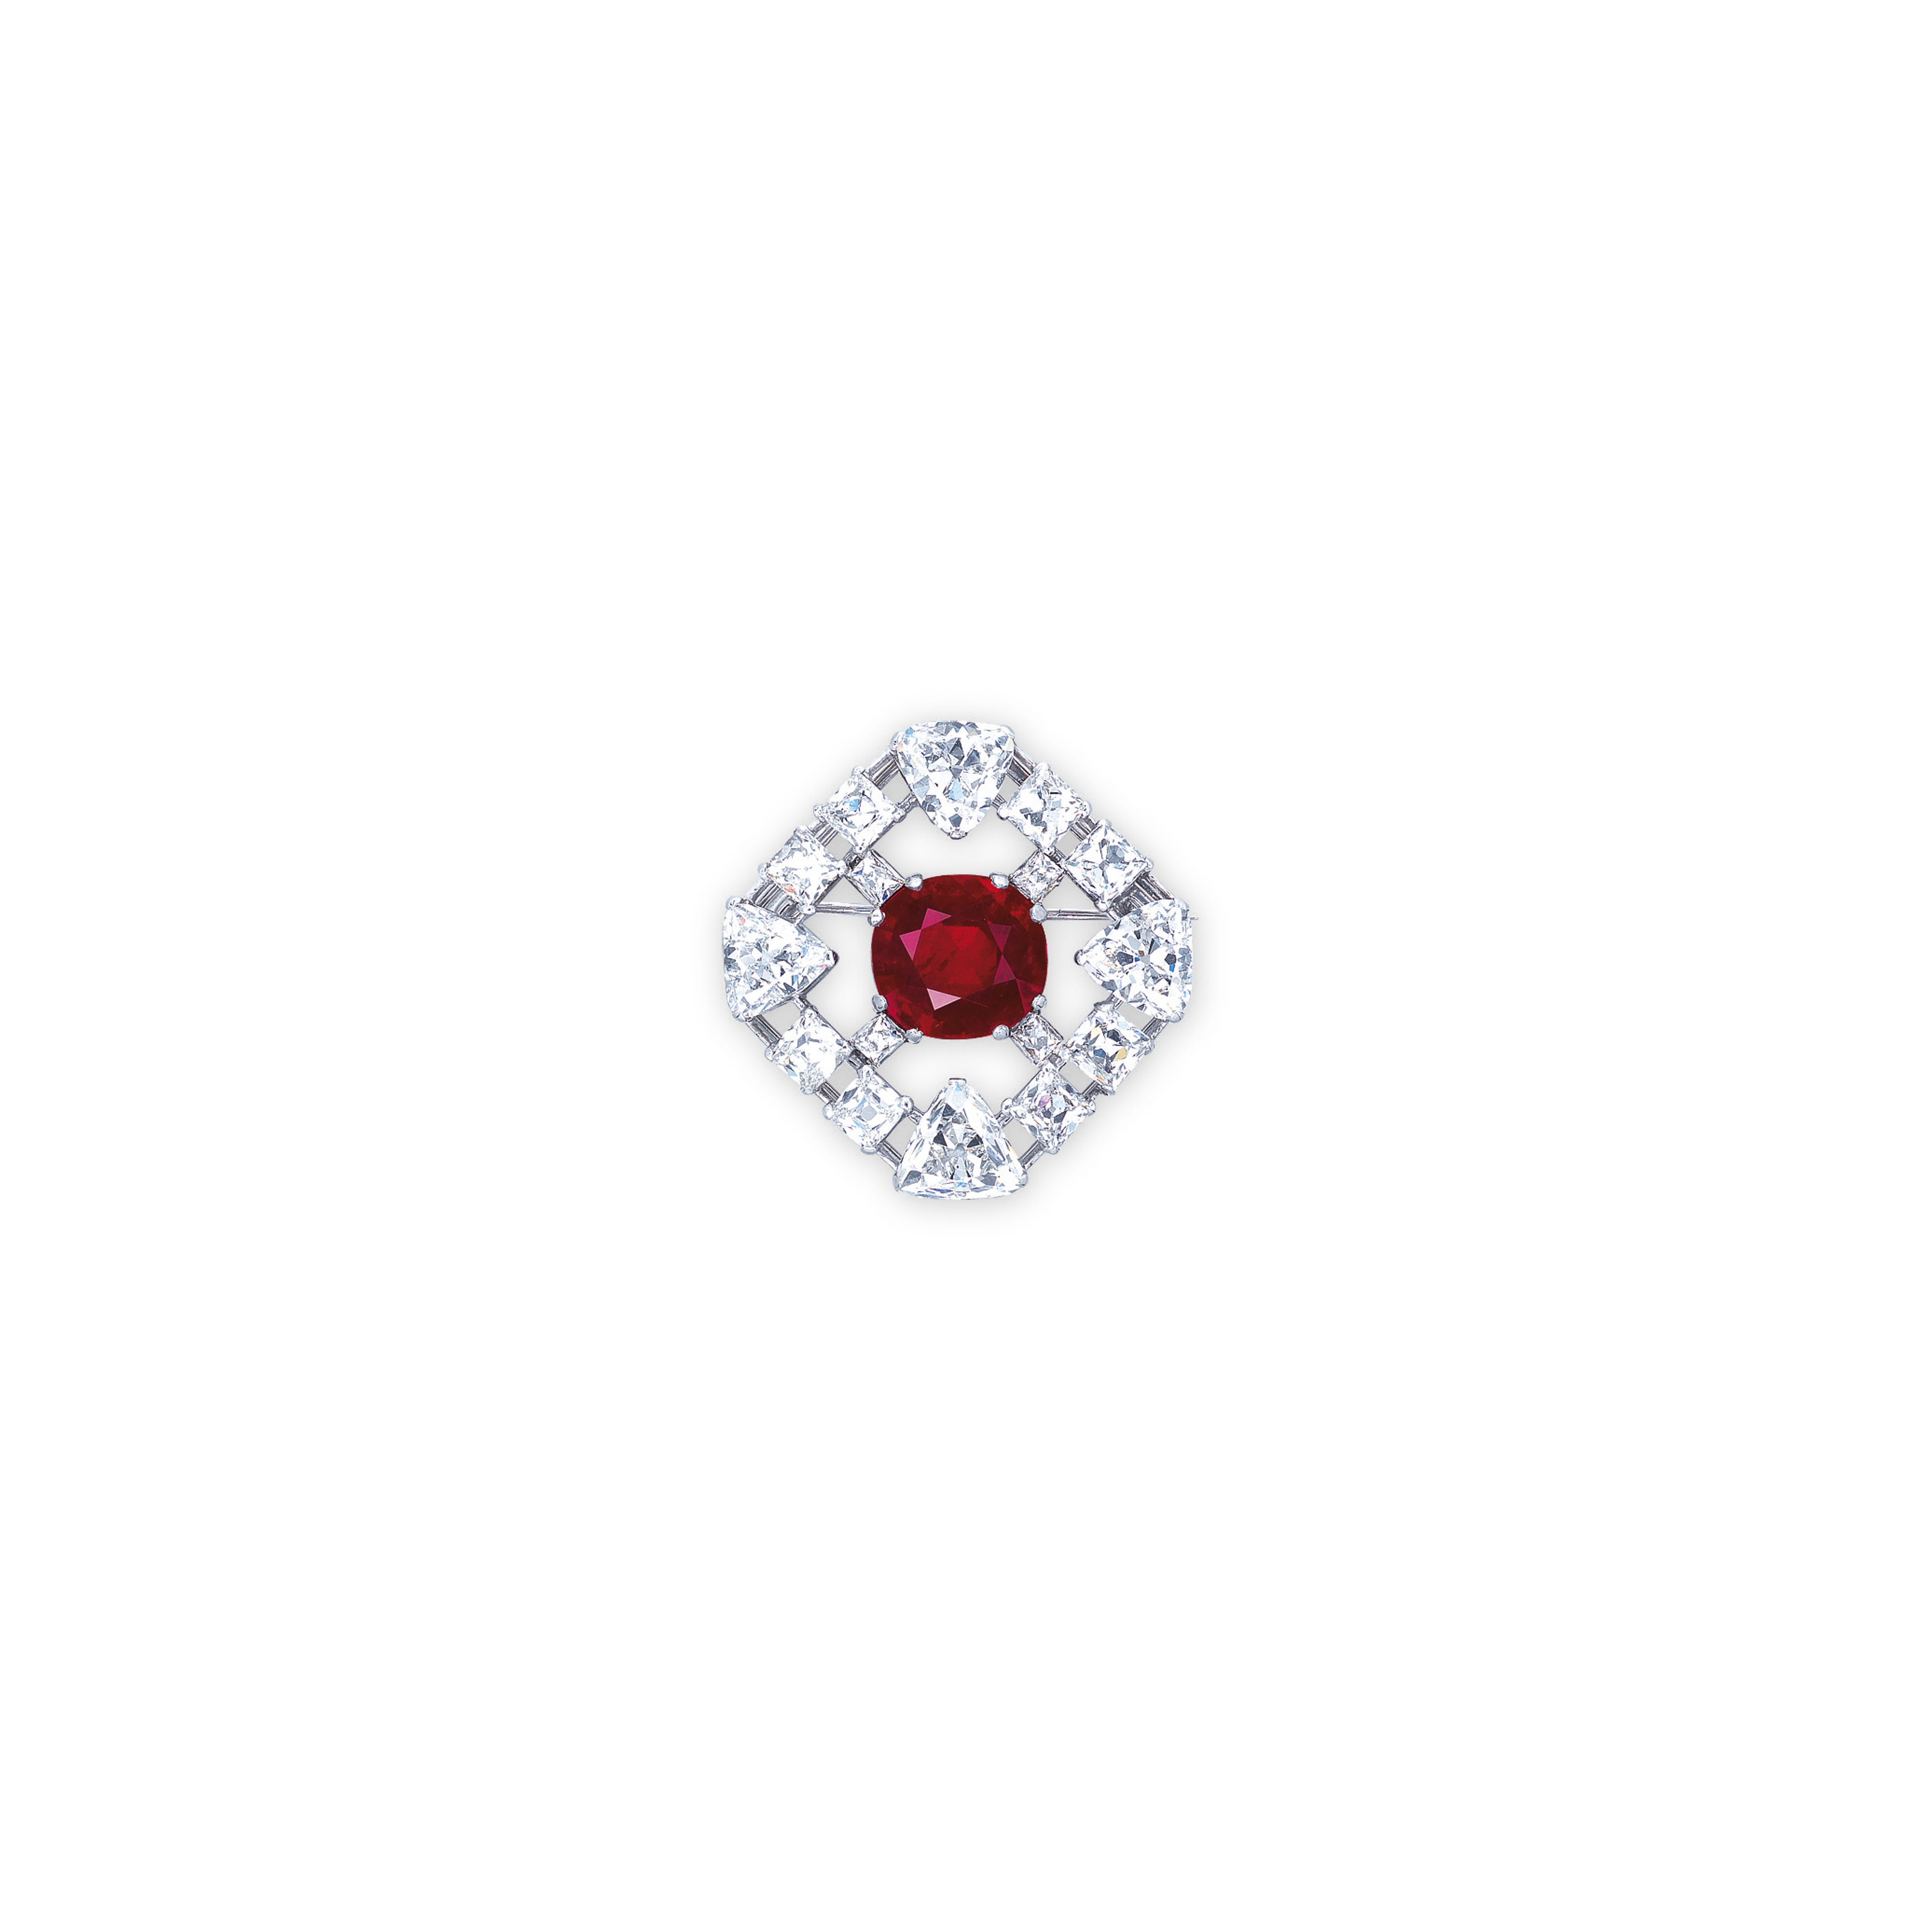 AN EXTREMELY RARE RUBY AND DIAMOND BROOCH, BY CARTIER